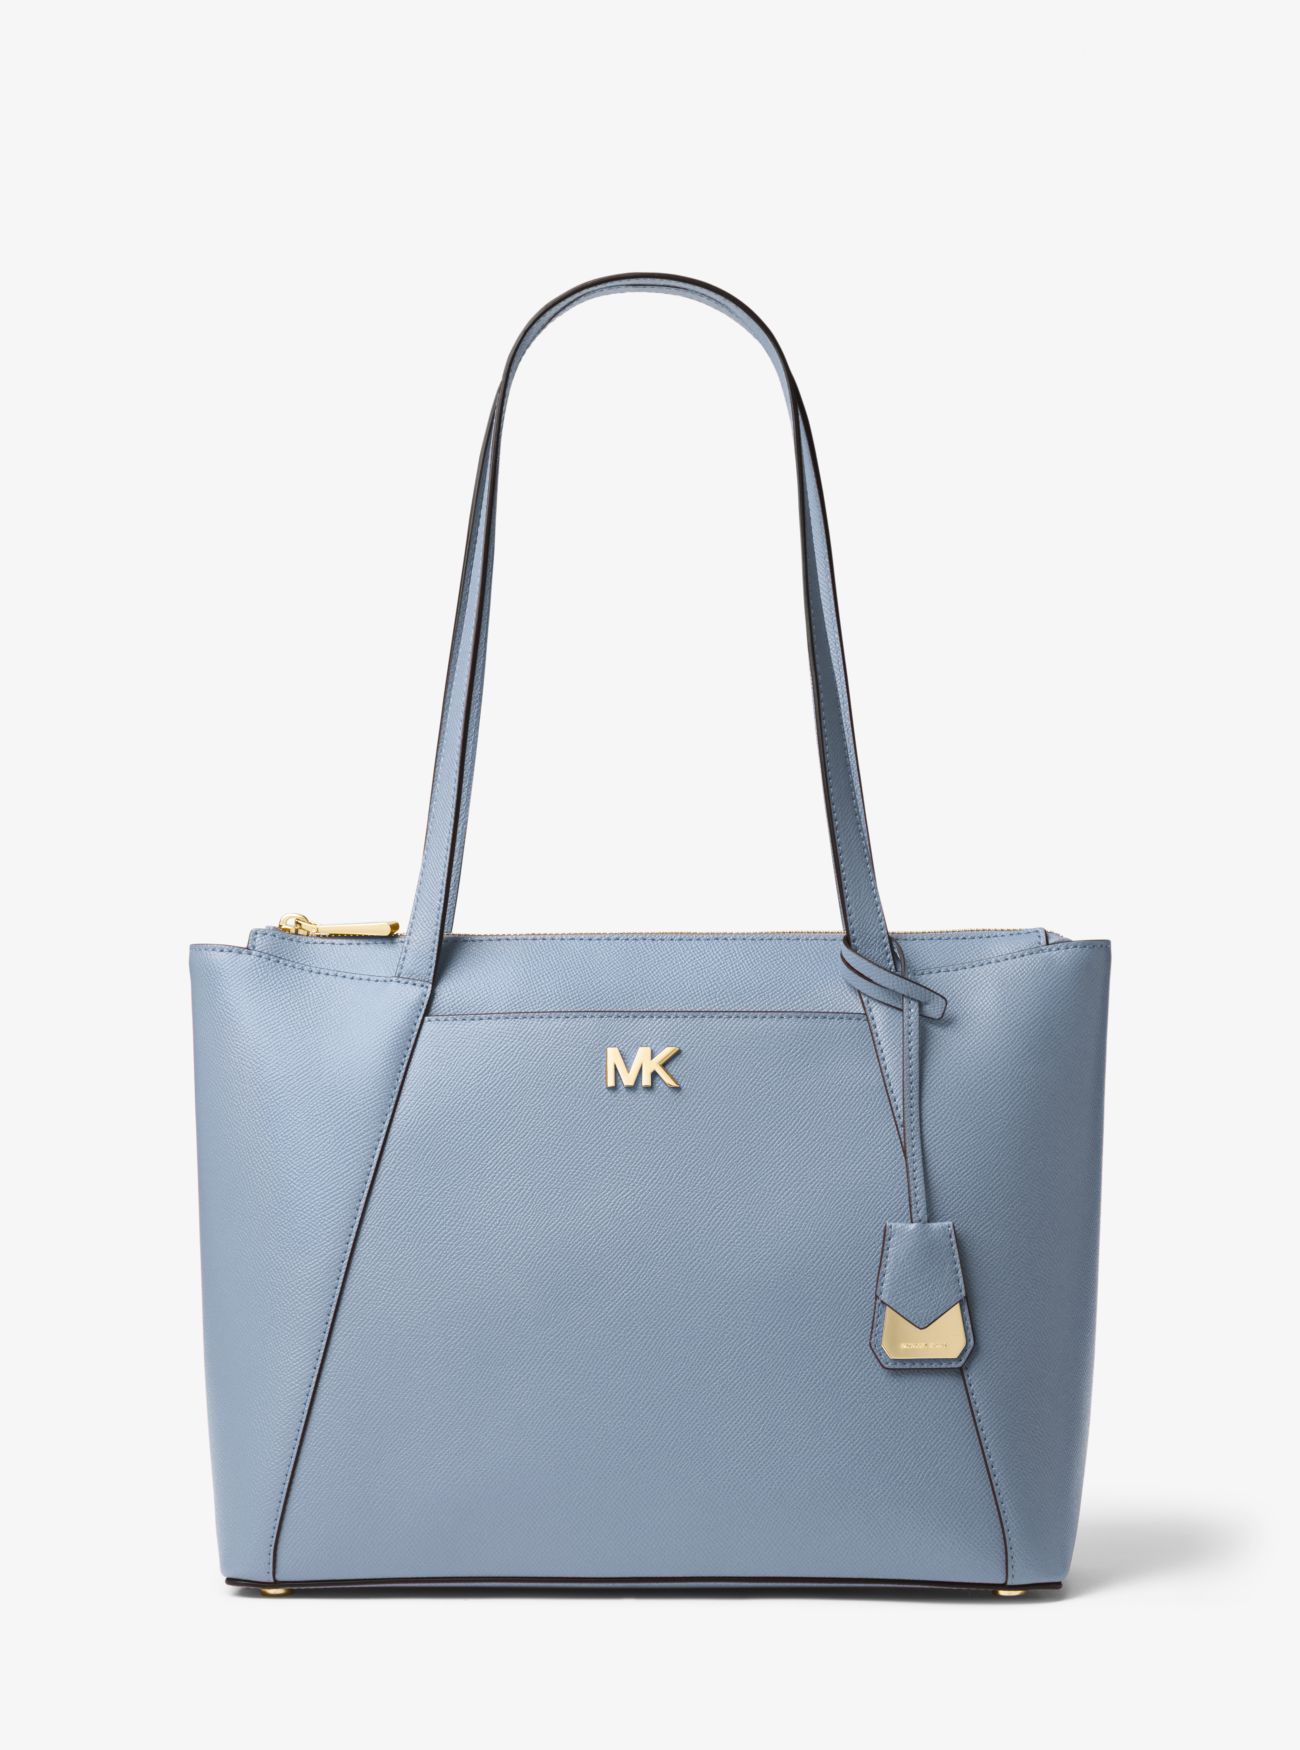 13a010eb0788 Michael Kors Handbags Are on Up to 75% Off for a Labor Day Sale